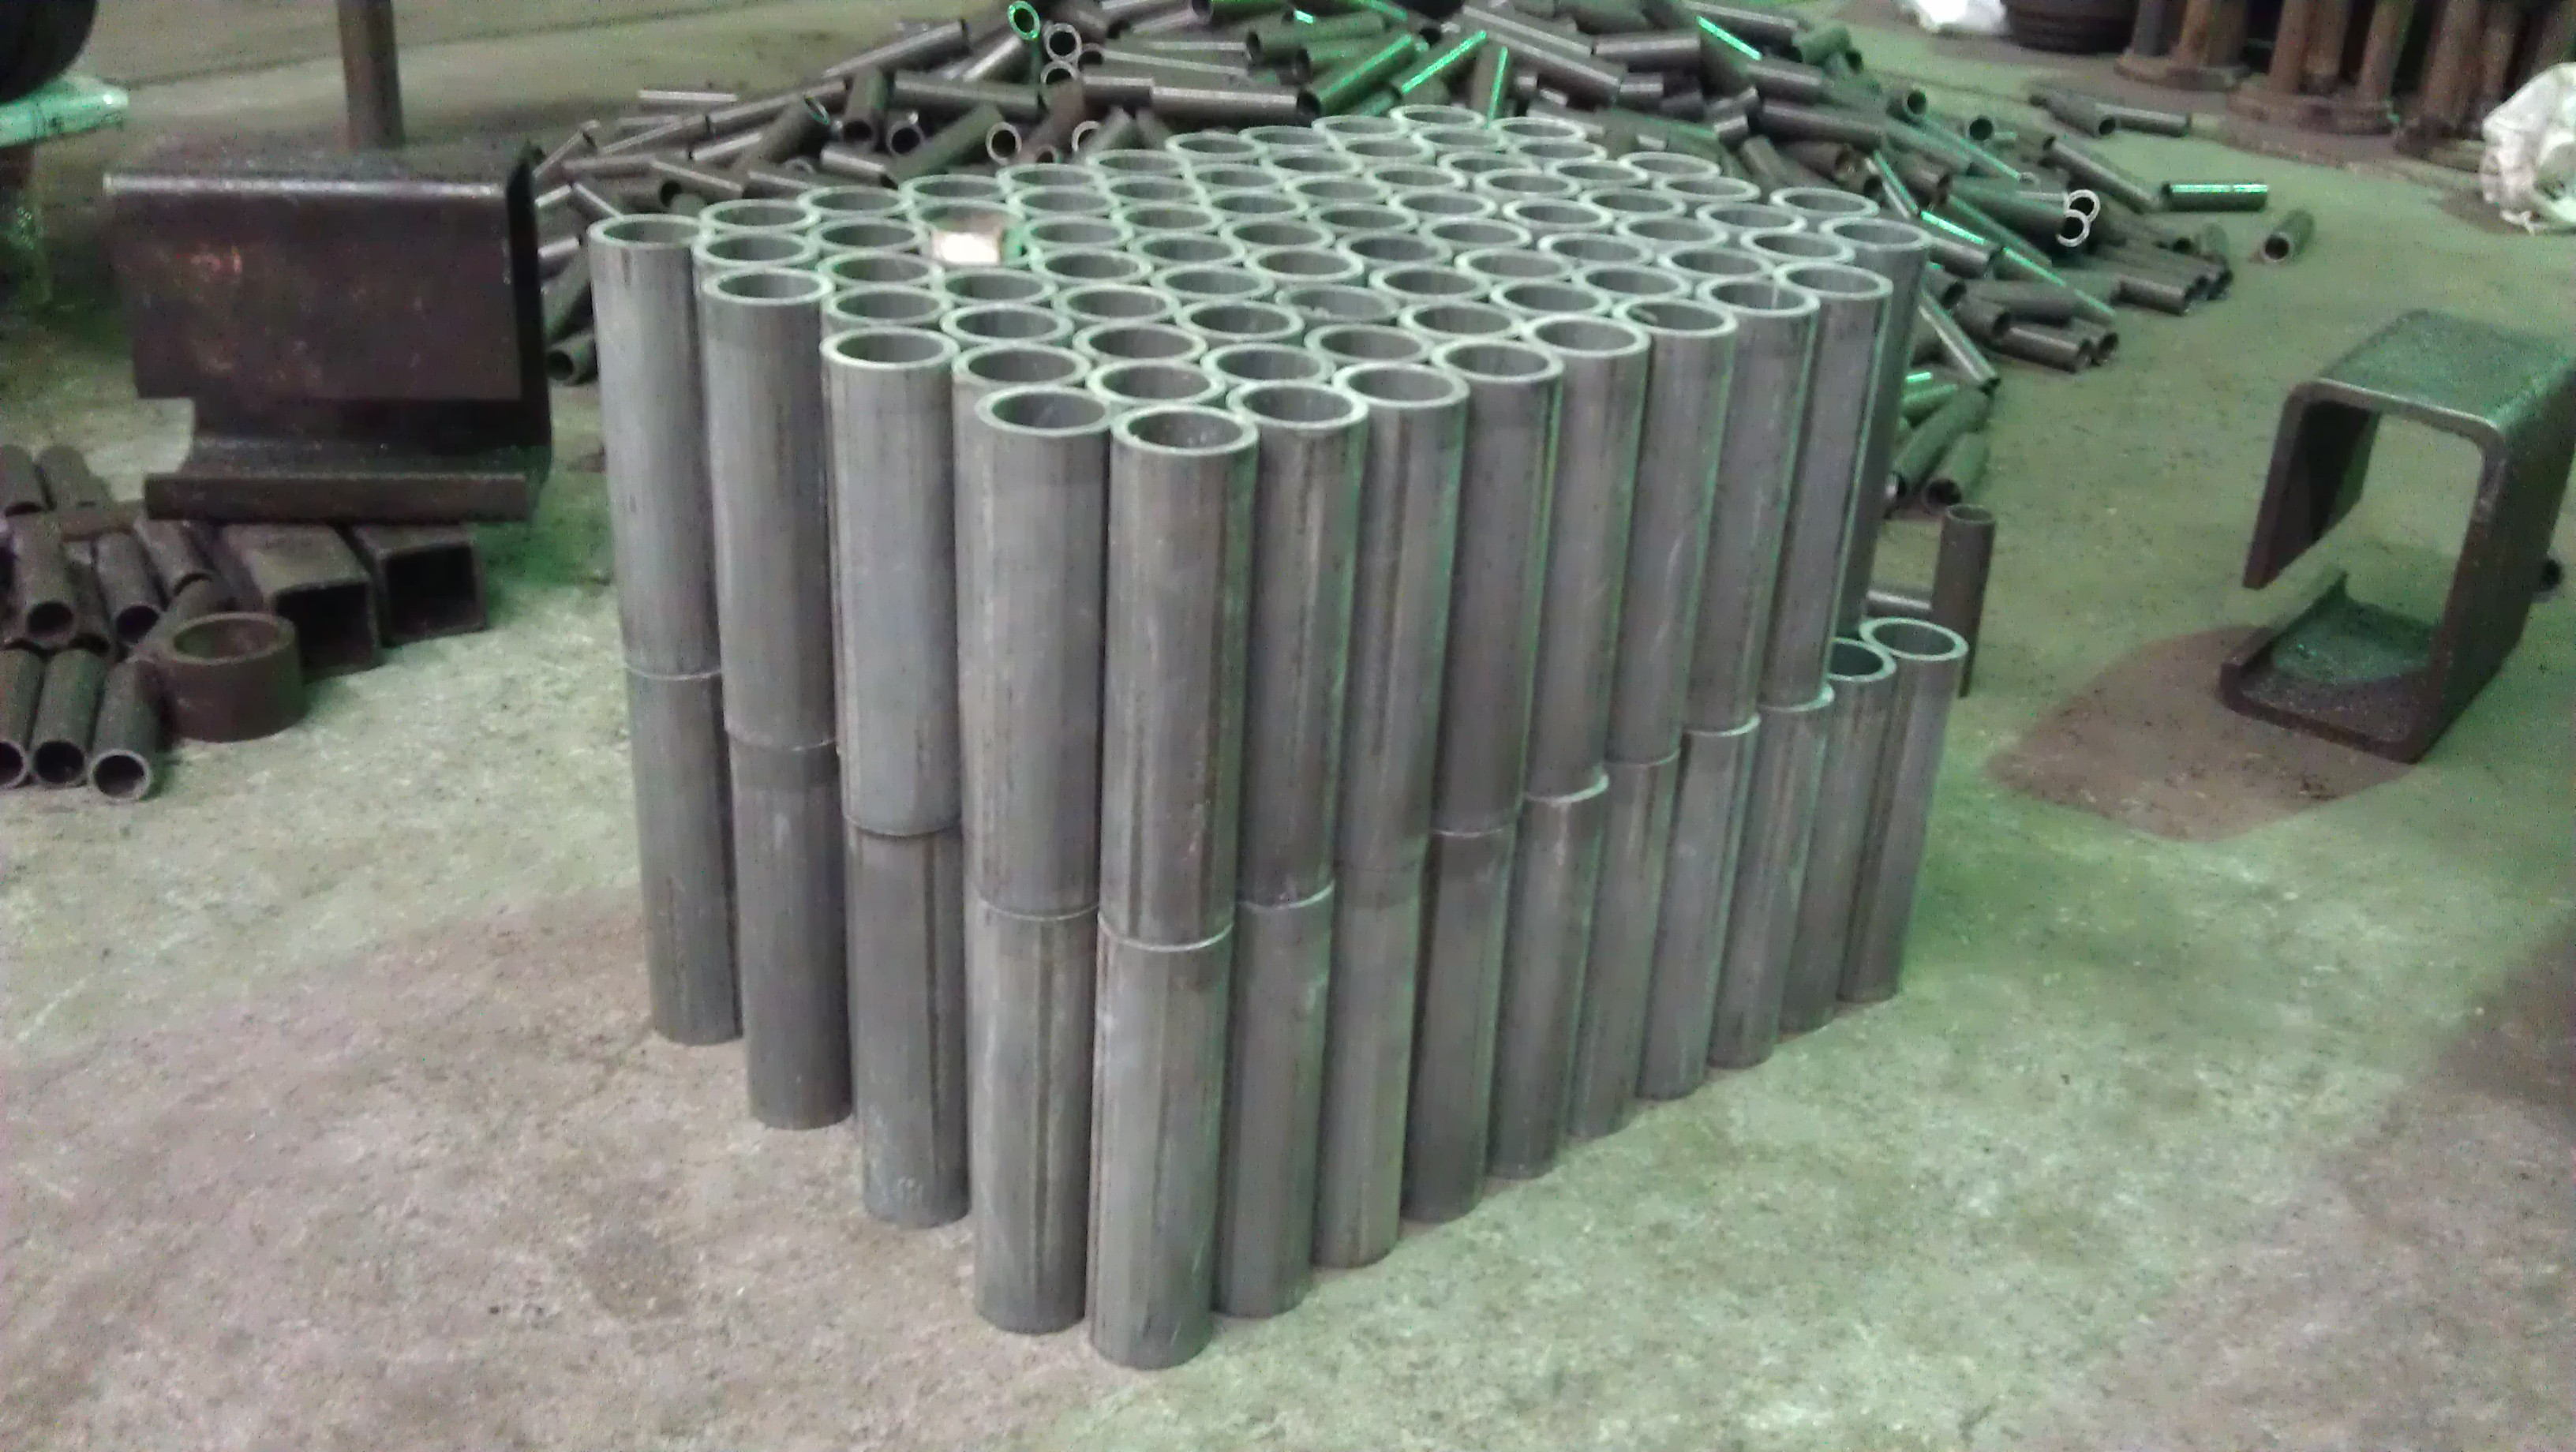 buy  Sae j525 welded cold draw low carbon steel tubing annealed for bending and flaring manufacturer